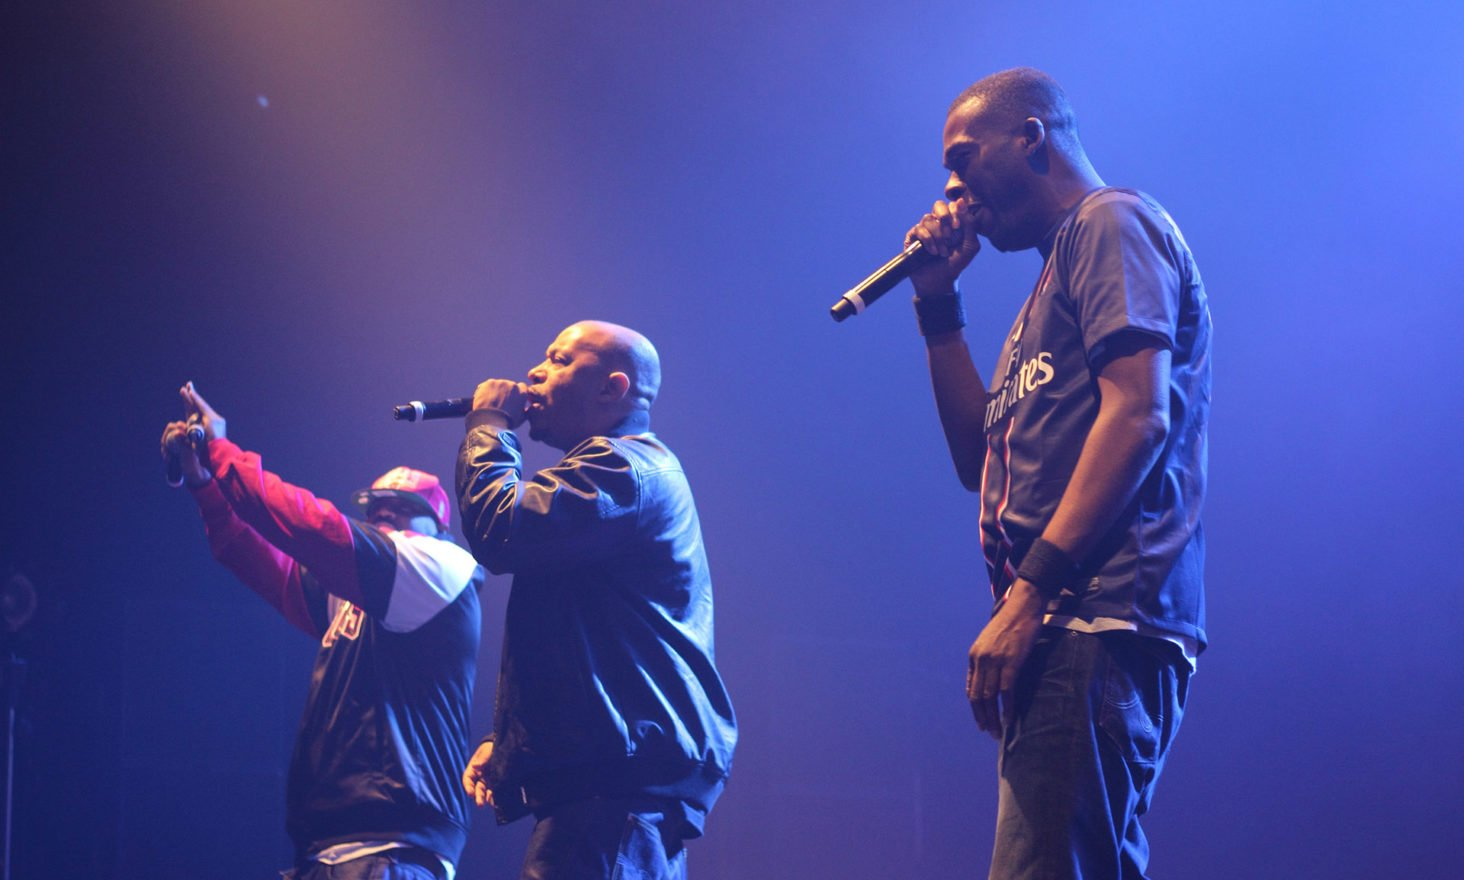 Dirty coin cryptocurrency linked to Wu-Tang Clan